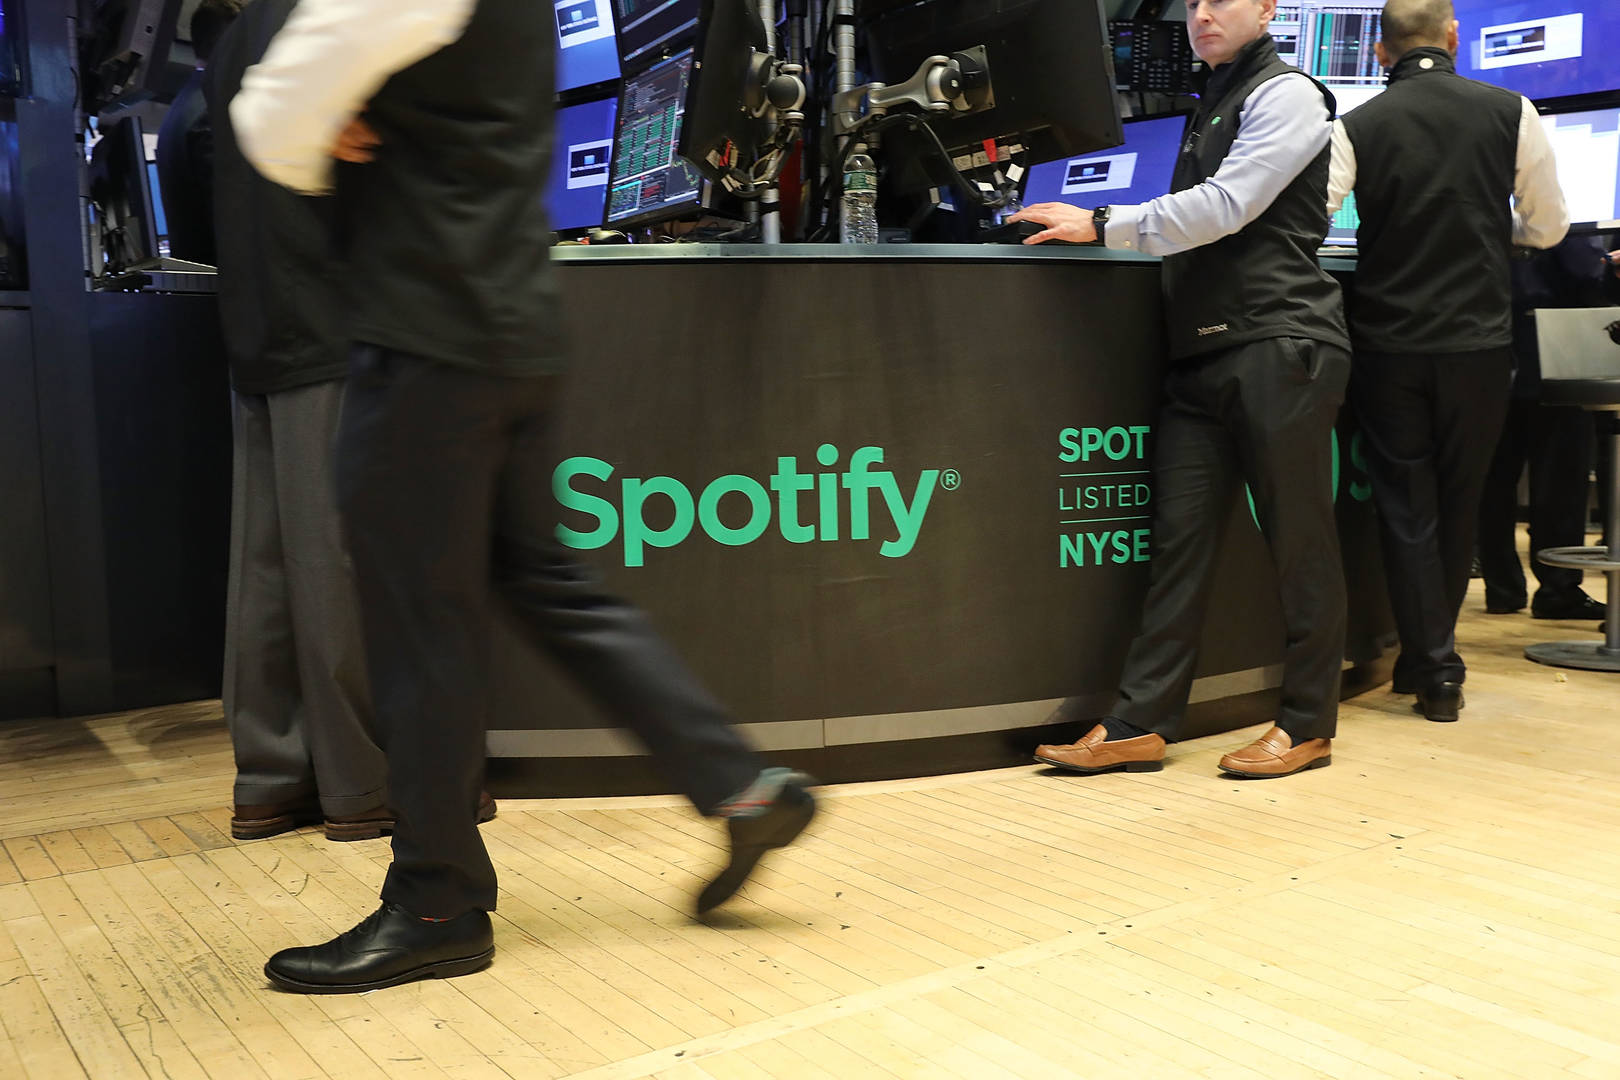 Spotify files antitrust complaint to Brussels against Apple